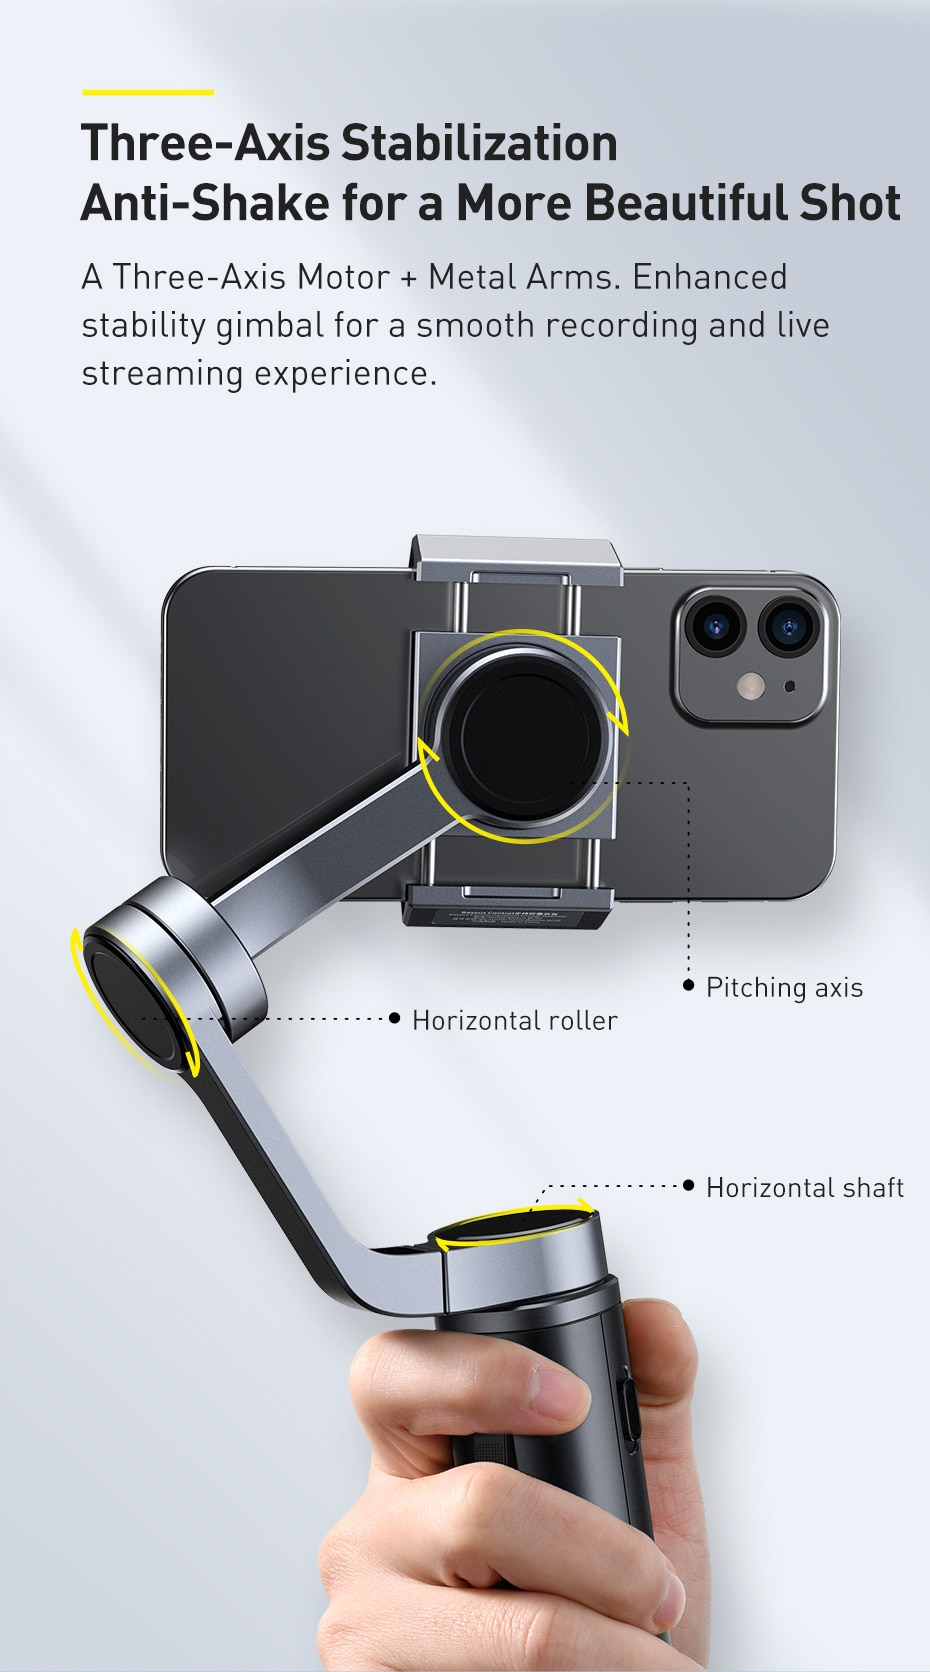 Baseus Foldable Metal Smartphone Handheld Gimbal Stabilizer 3-Axis Pocket Sized Phone Gimbals for IOS/Android Mobile Camera